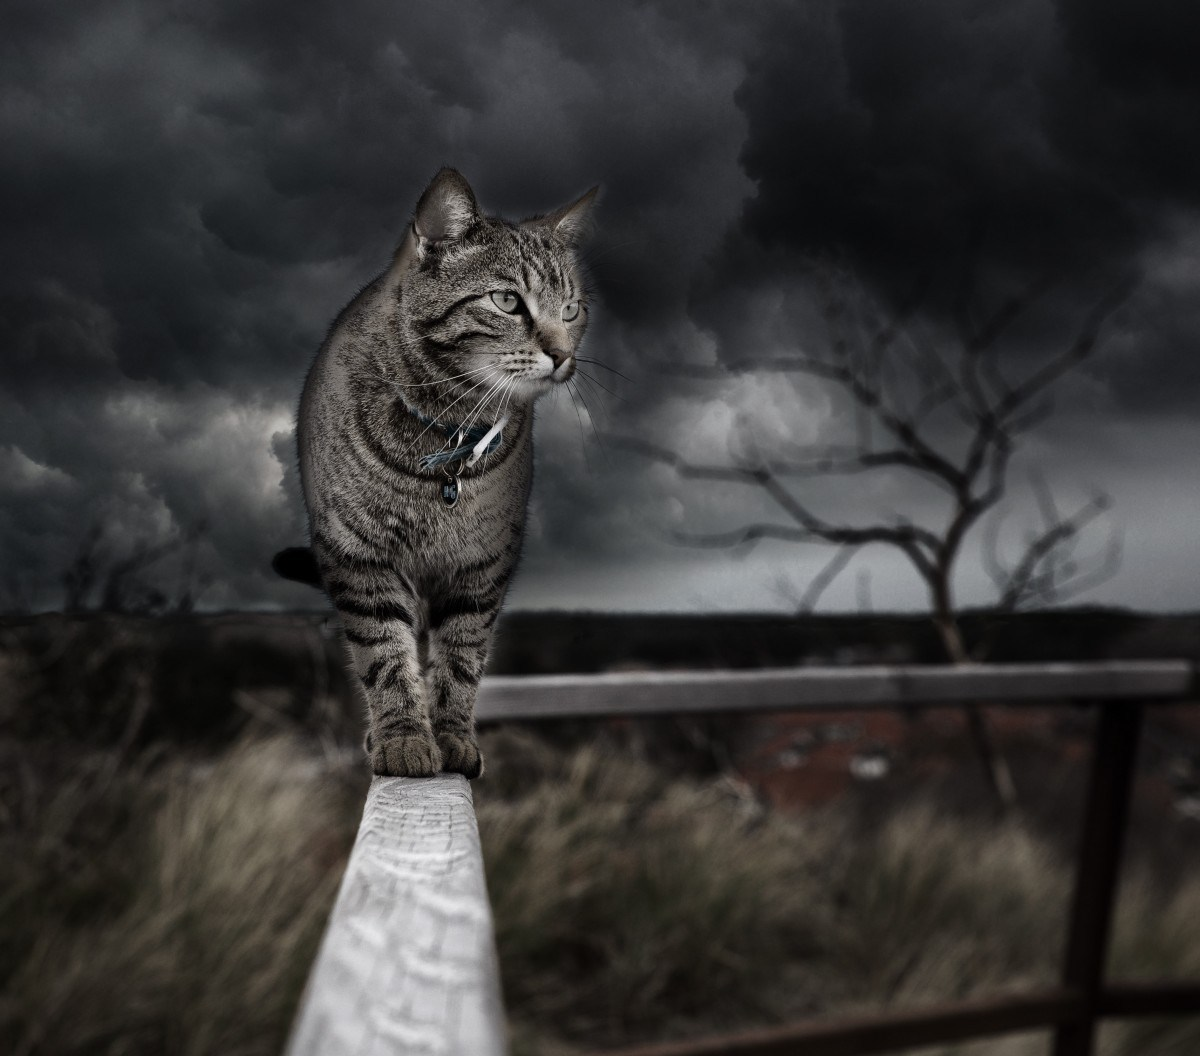 Purrsday Poetry: A Scrap of Catteral for Freya  Purrsday Poetry: A Scrap of Catteral for Freya cat in a storm